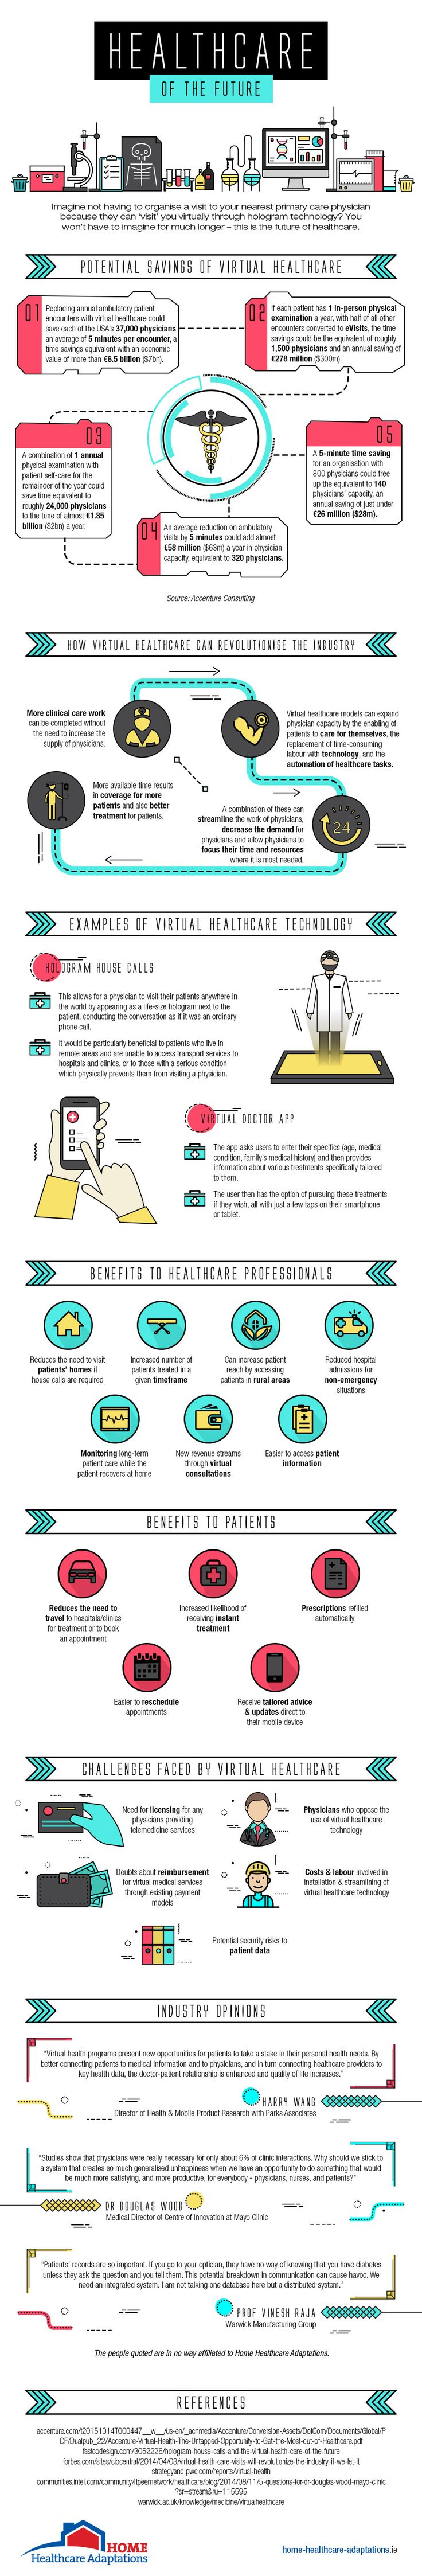 Healthcare of the Future - Infographic